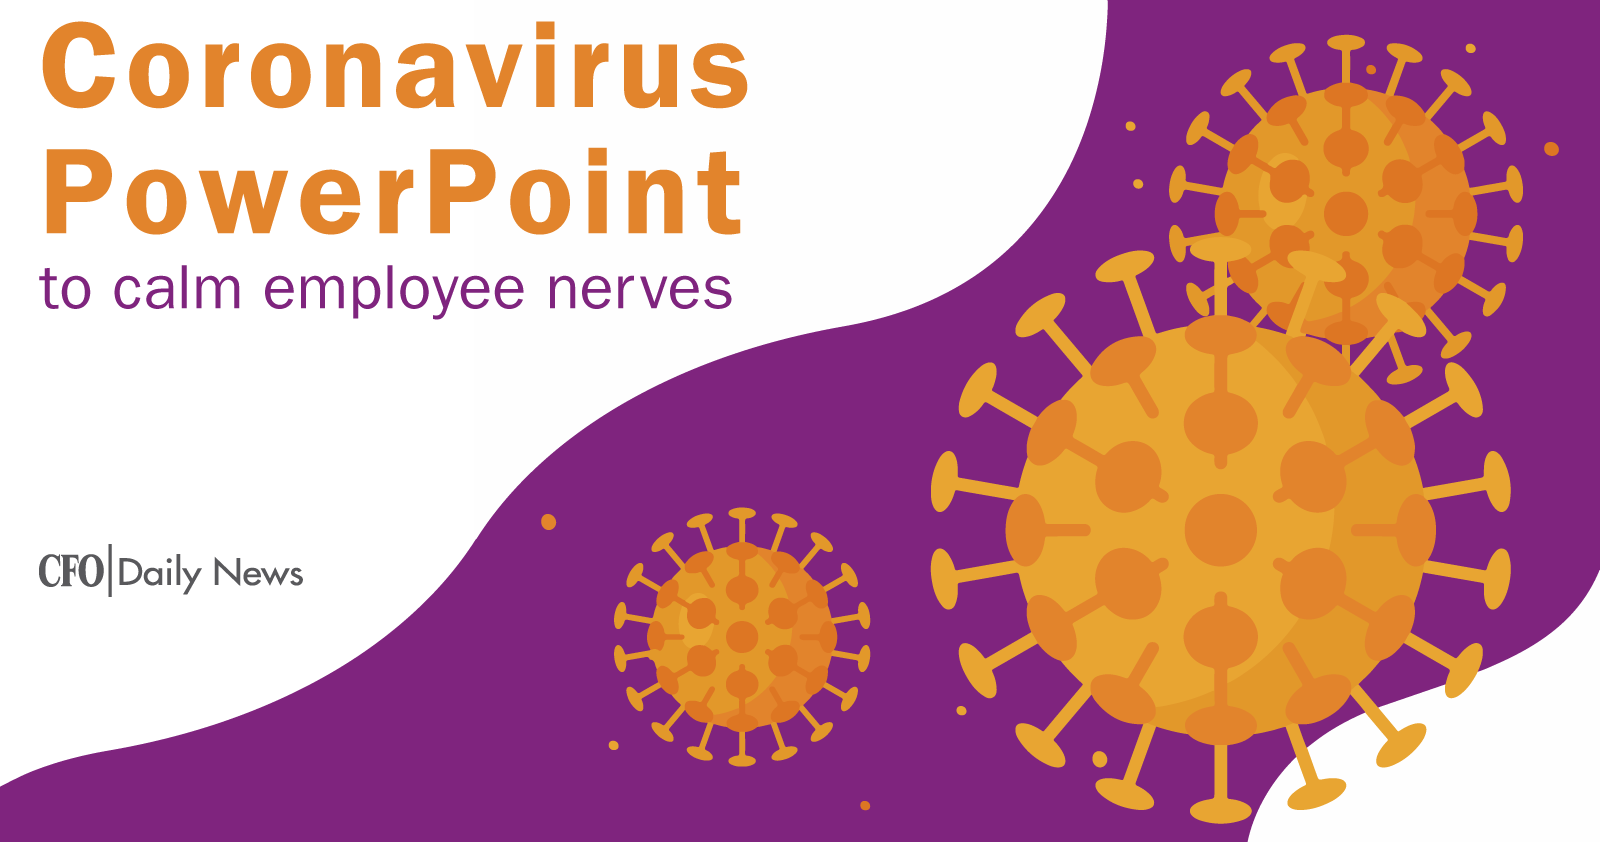 Coronavirus PowerPoint Calm Employee Nerves